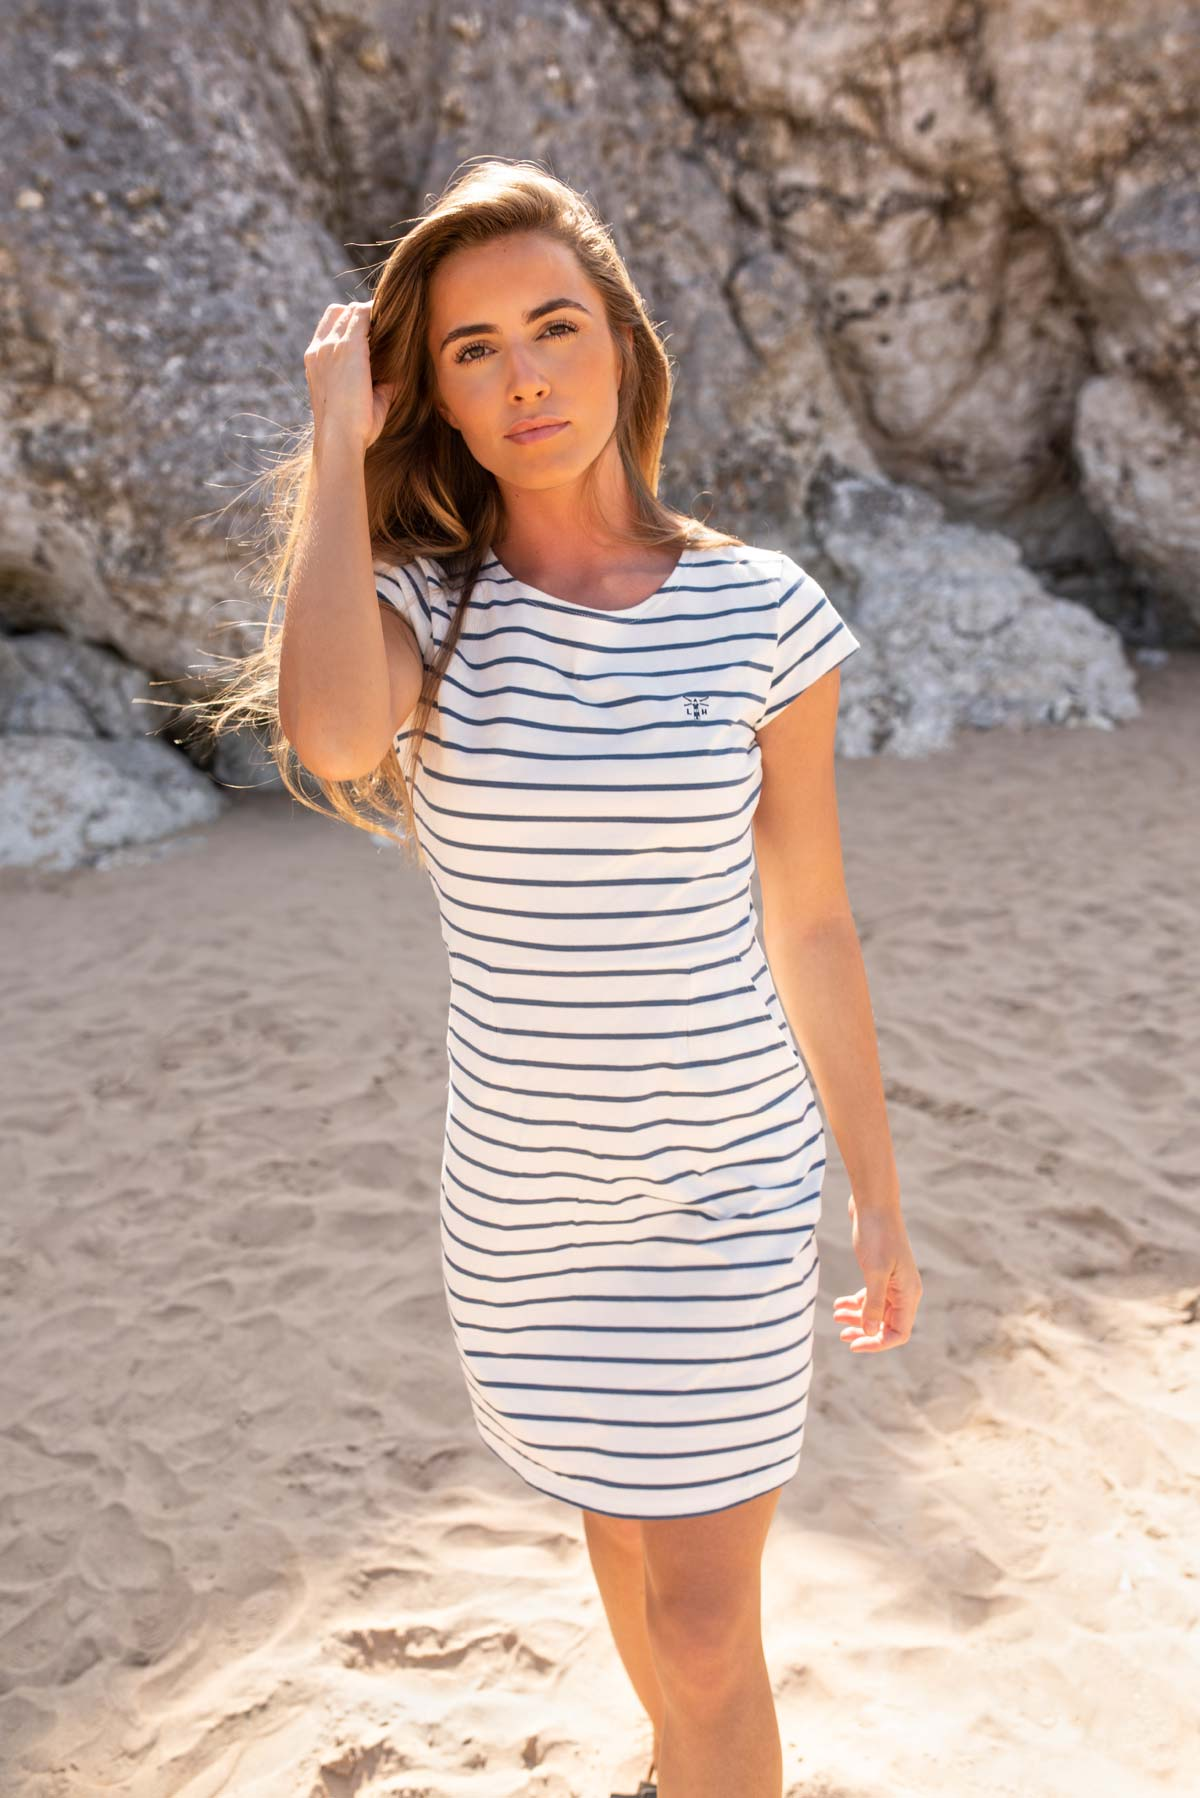 Women's Dresses - Liliana - Breton Striped Dress